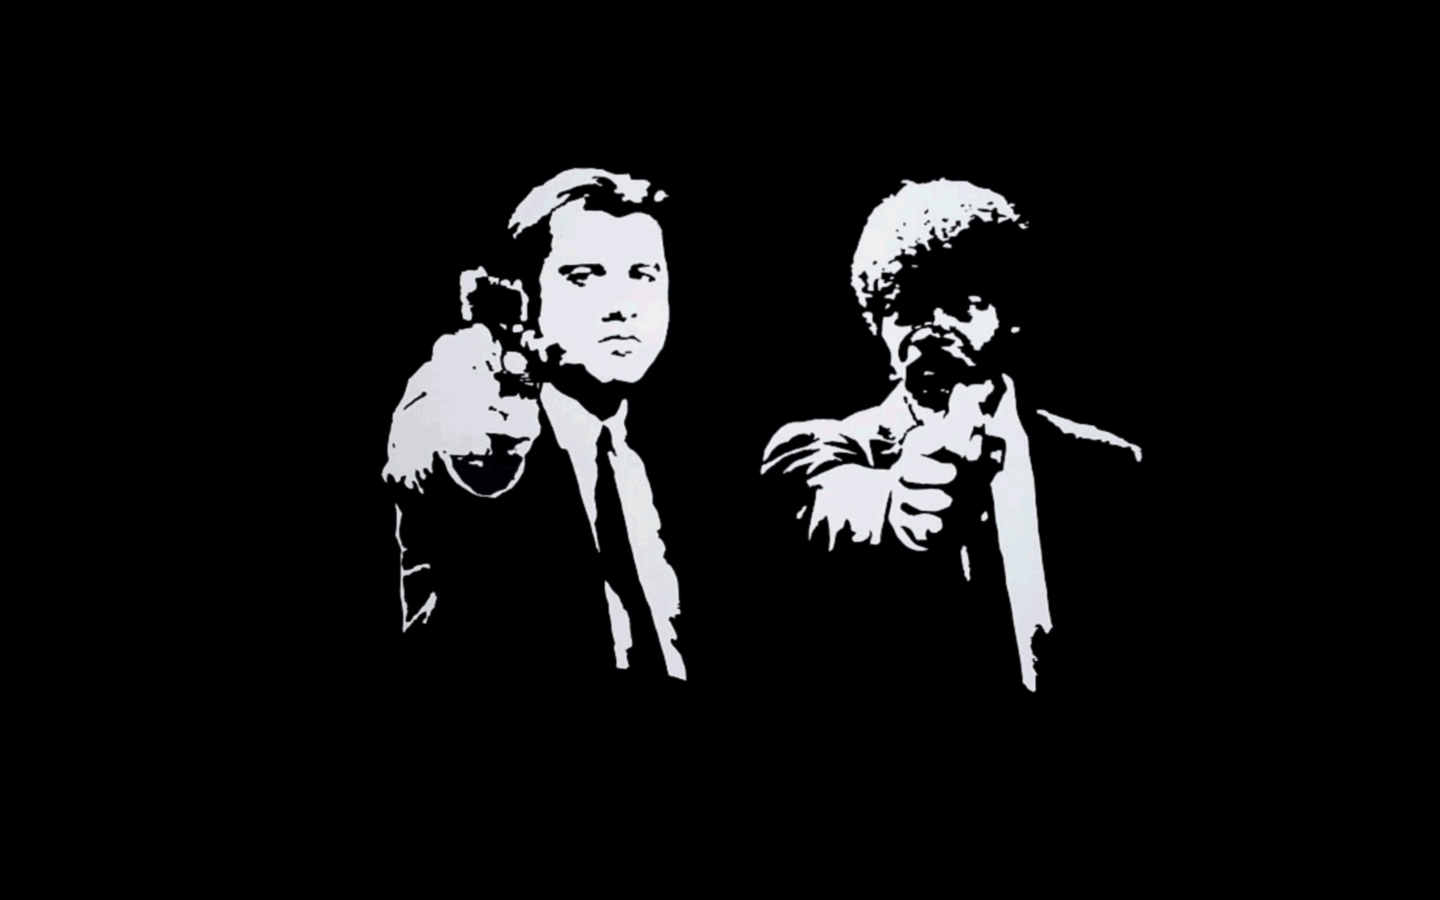 pulp fiction wallpapers - wallpaper cave